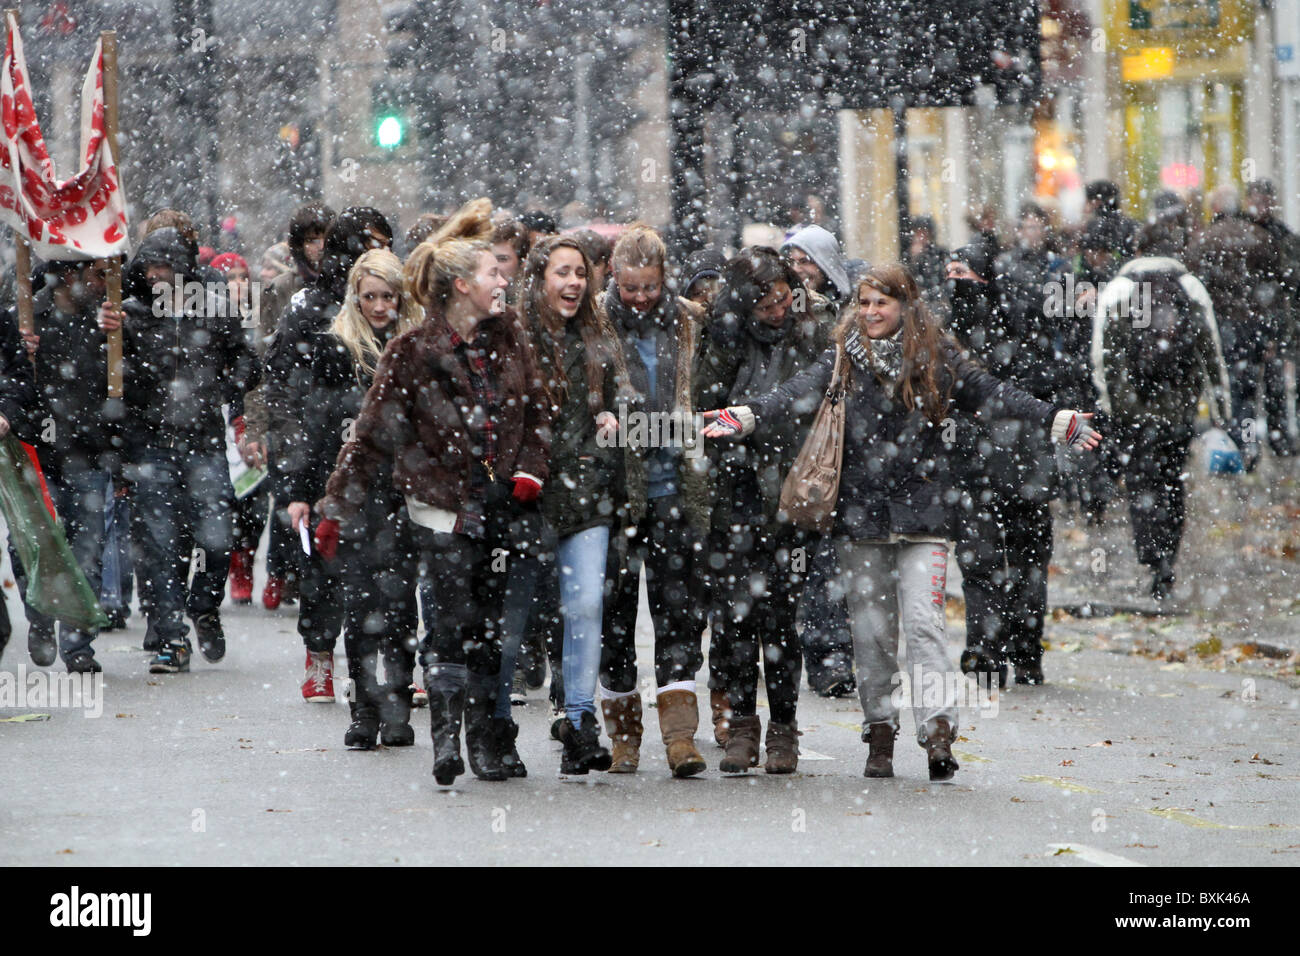 English Students' anti cuts protest through the snowy streets of London. Stock Photo